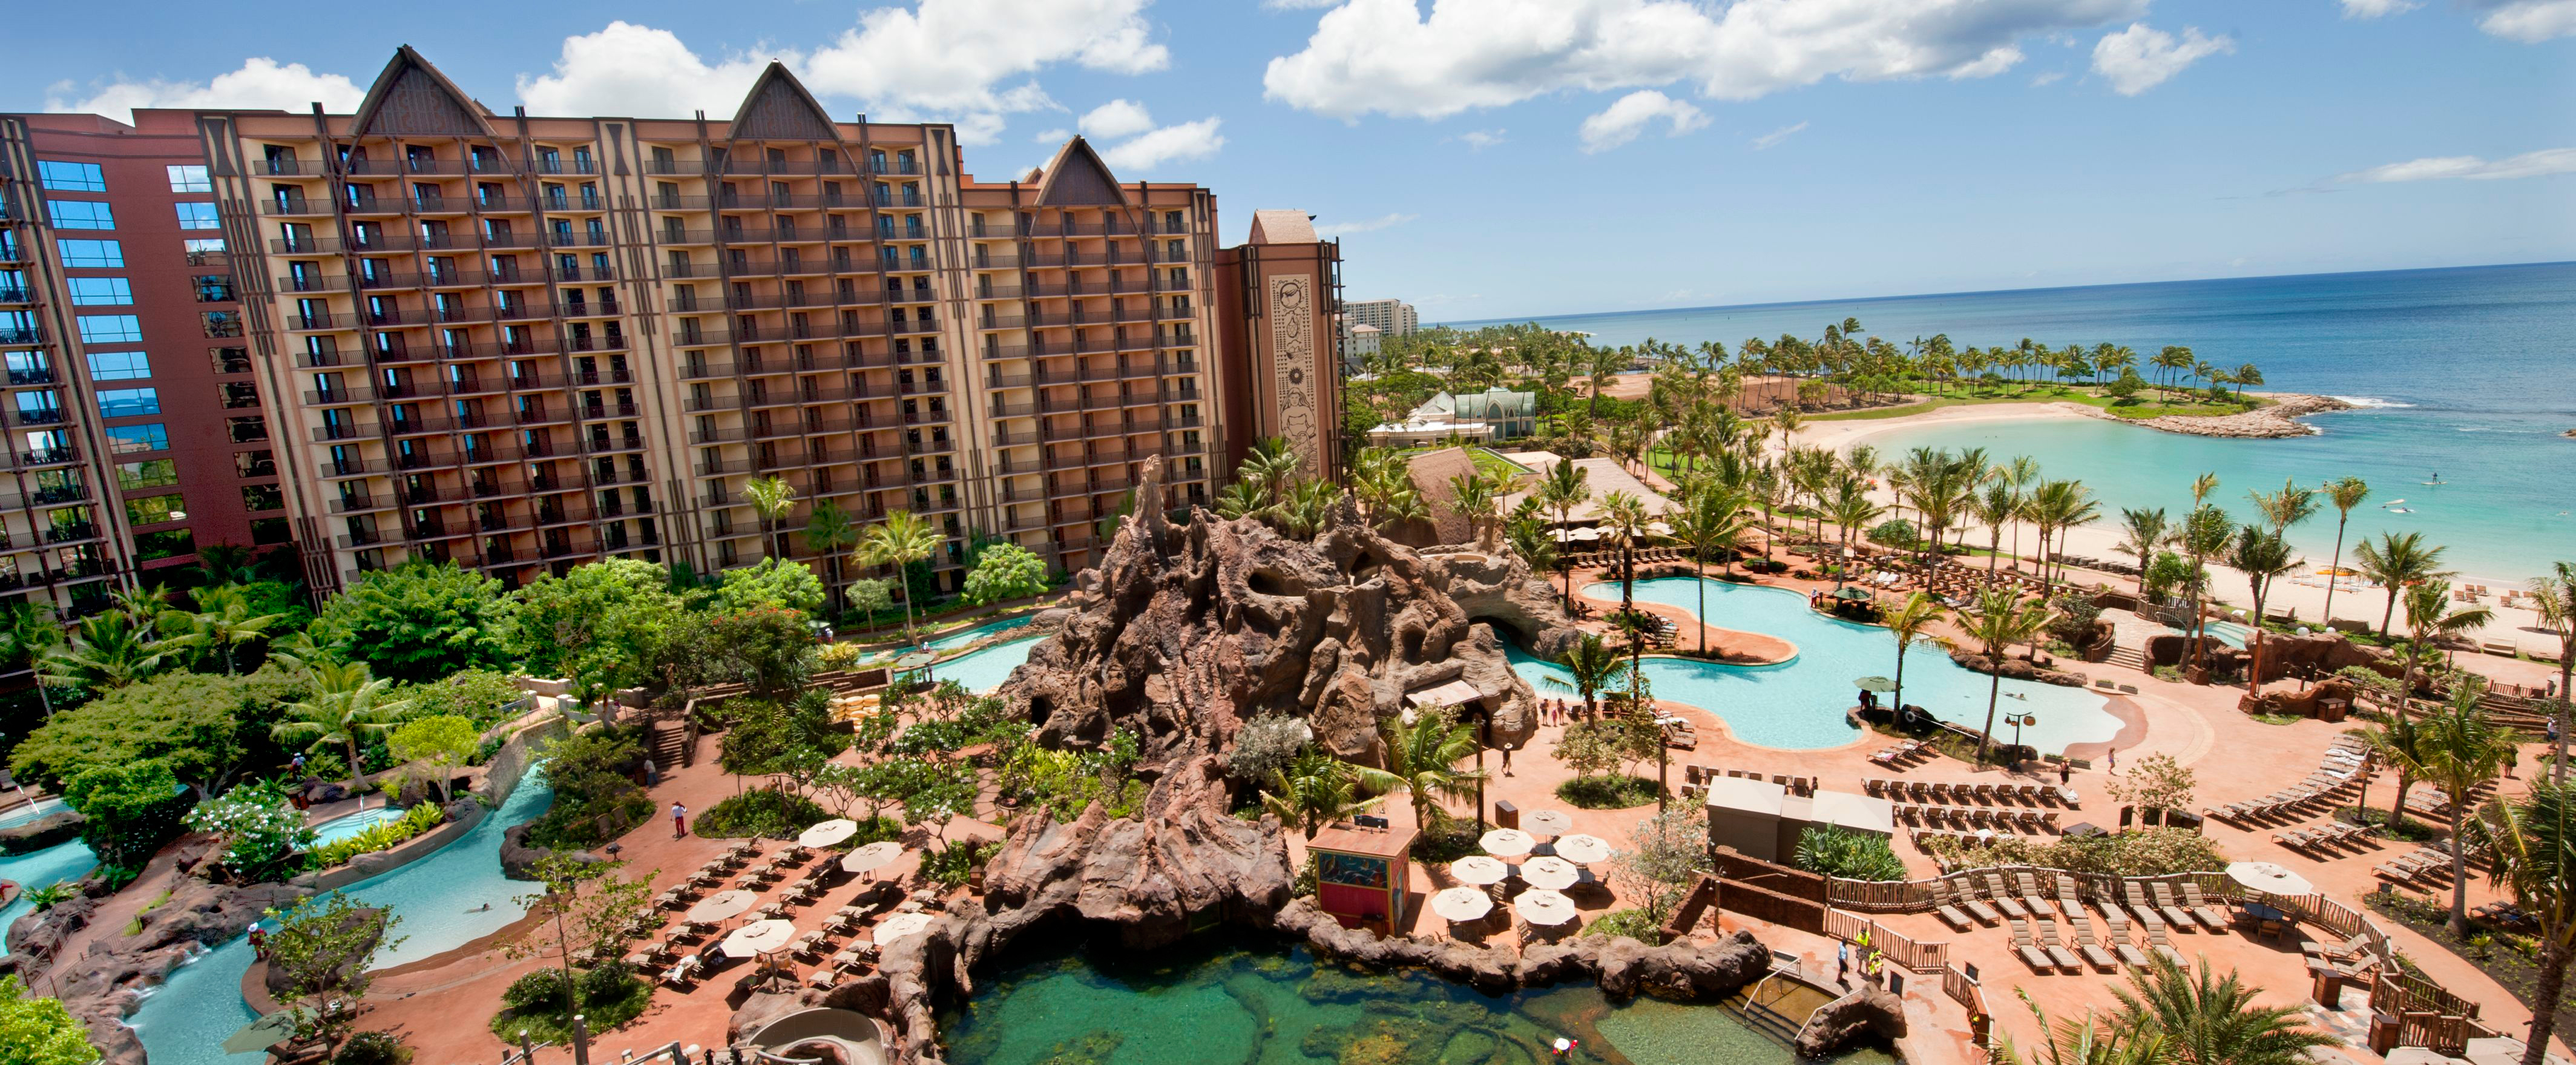 aulani-resort-exterior-and-pool-area